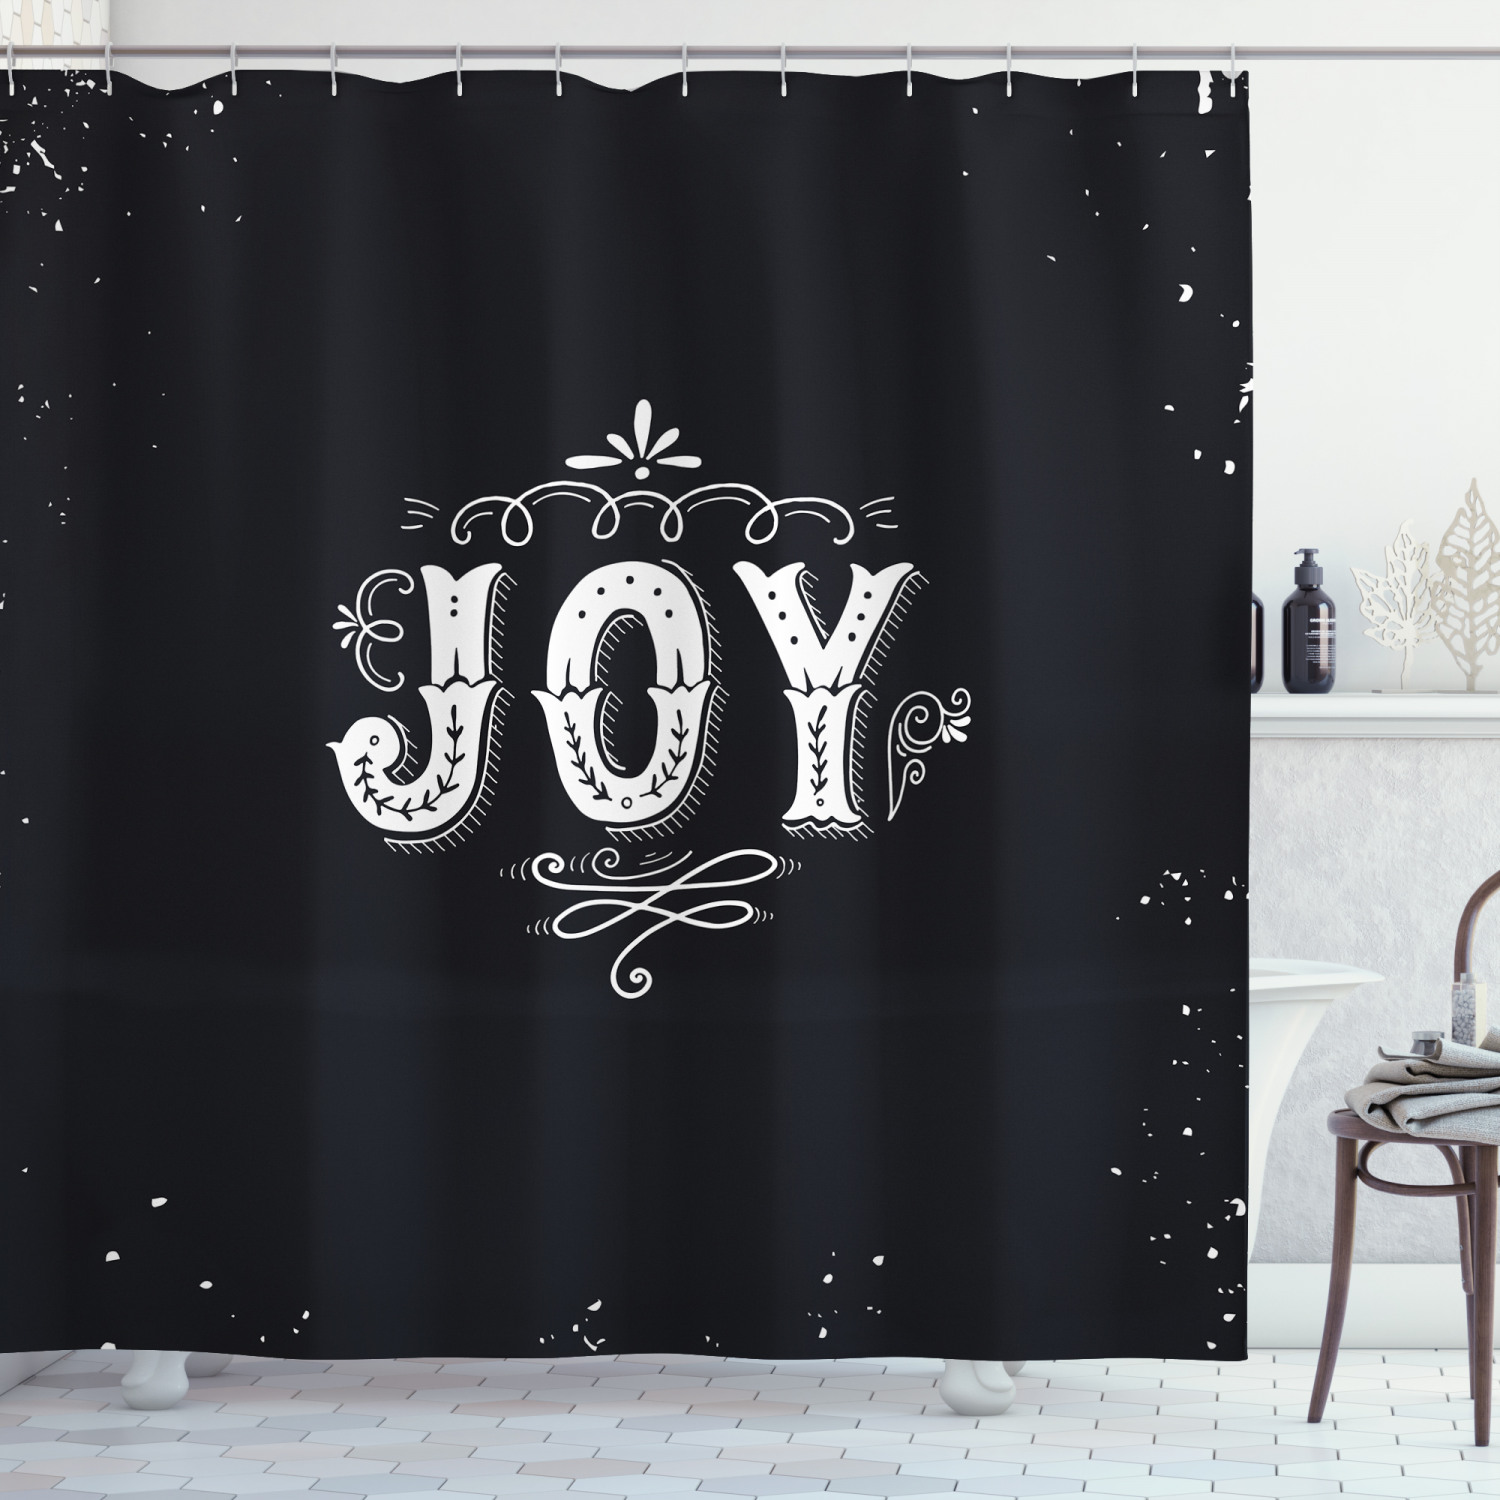 Details about  /New York Shower Curtain Monochrome American Print for Bathroom